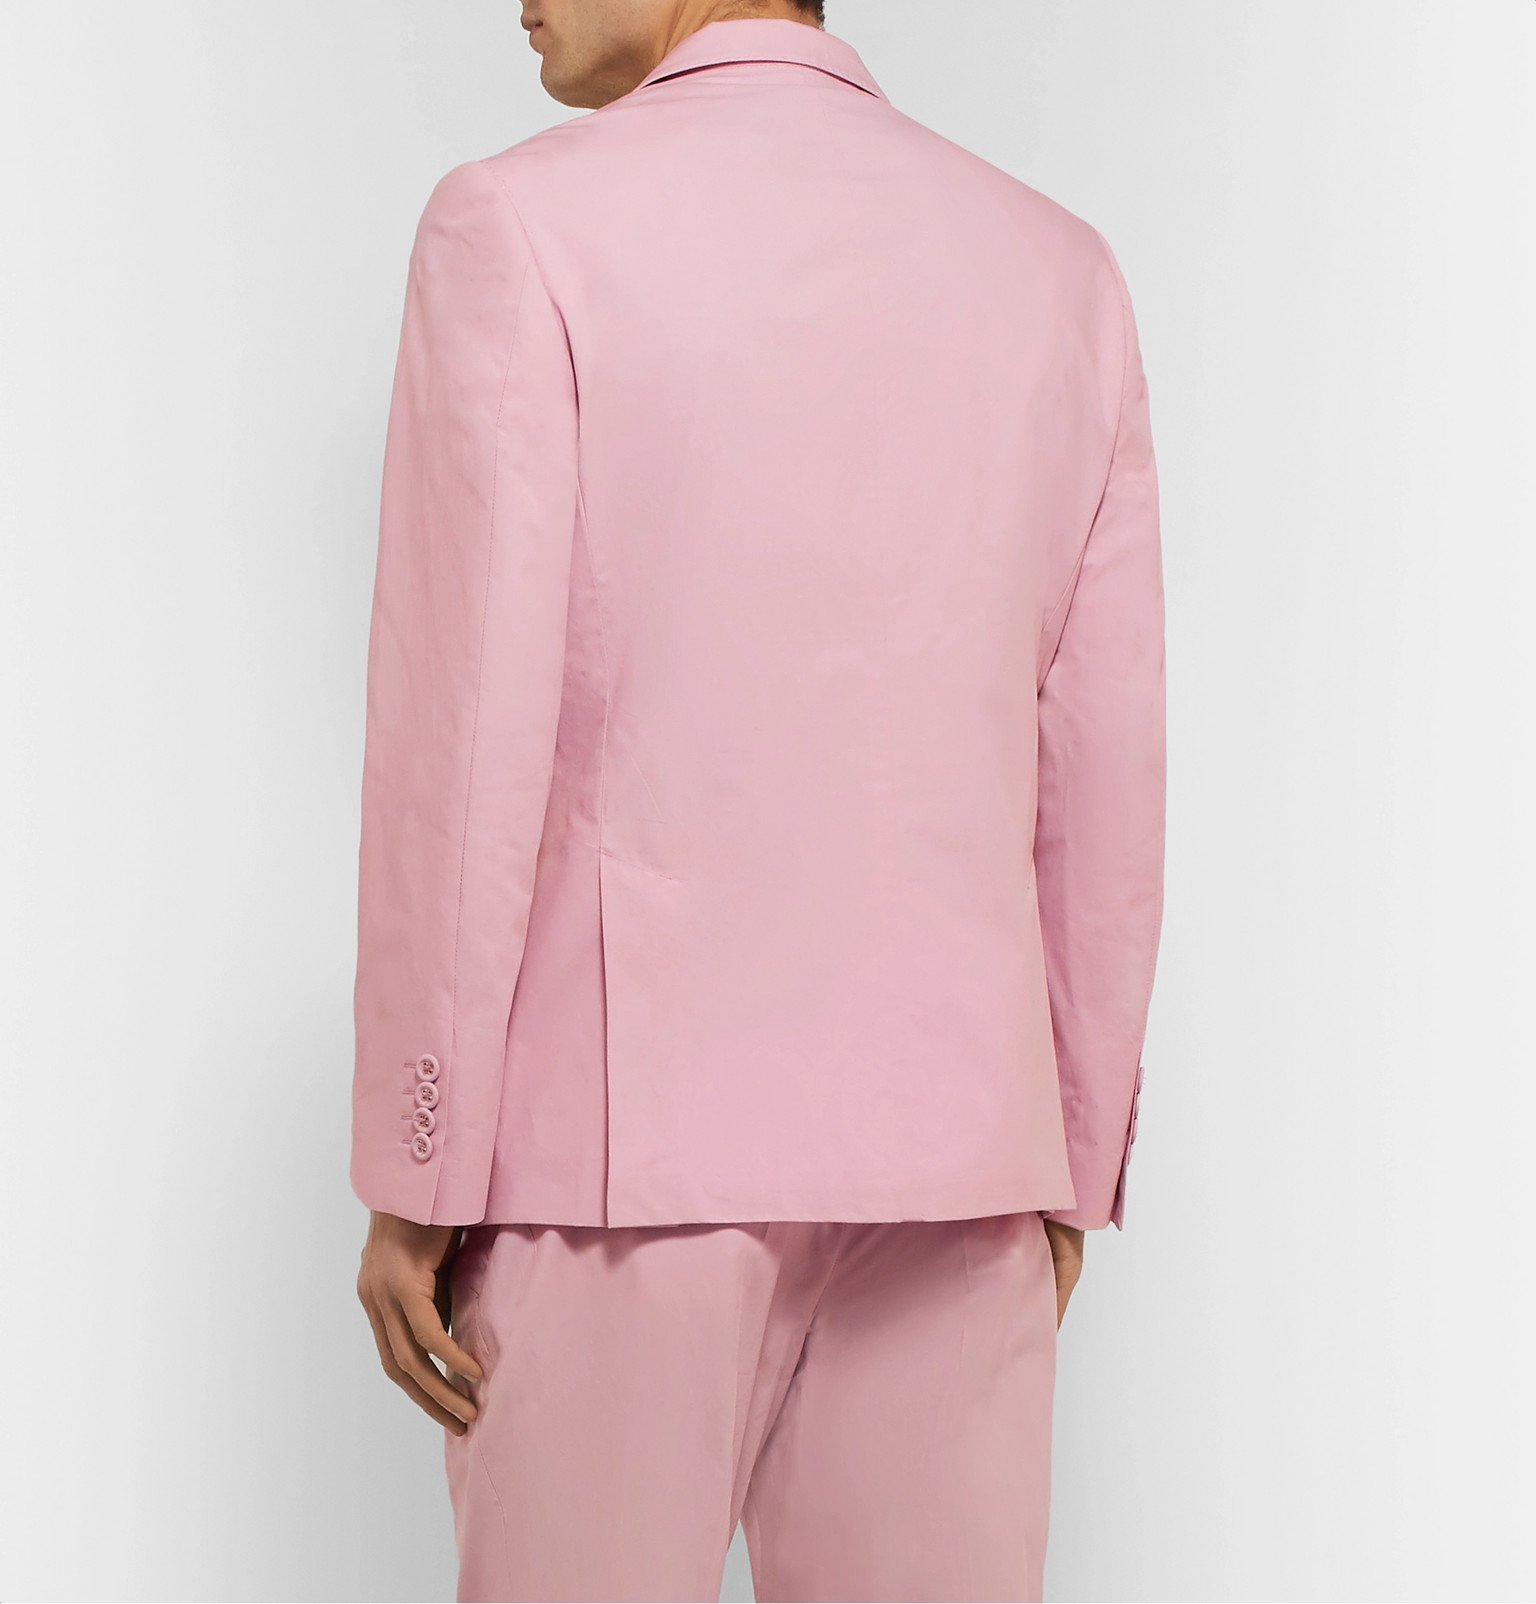 Officine Generale - Leon Unstructured Double-Breasted Cotton-Poplin Suit Jacket - Pink